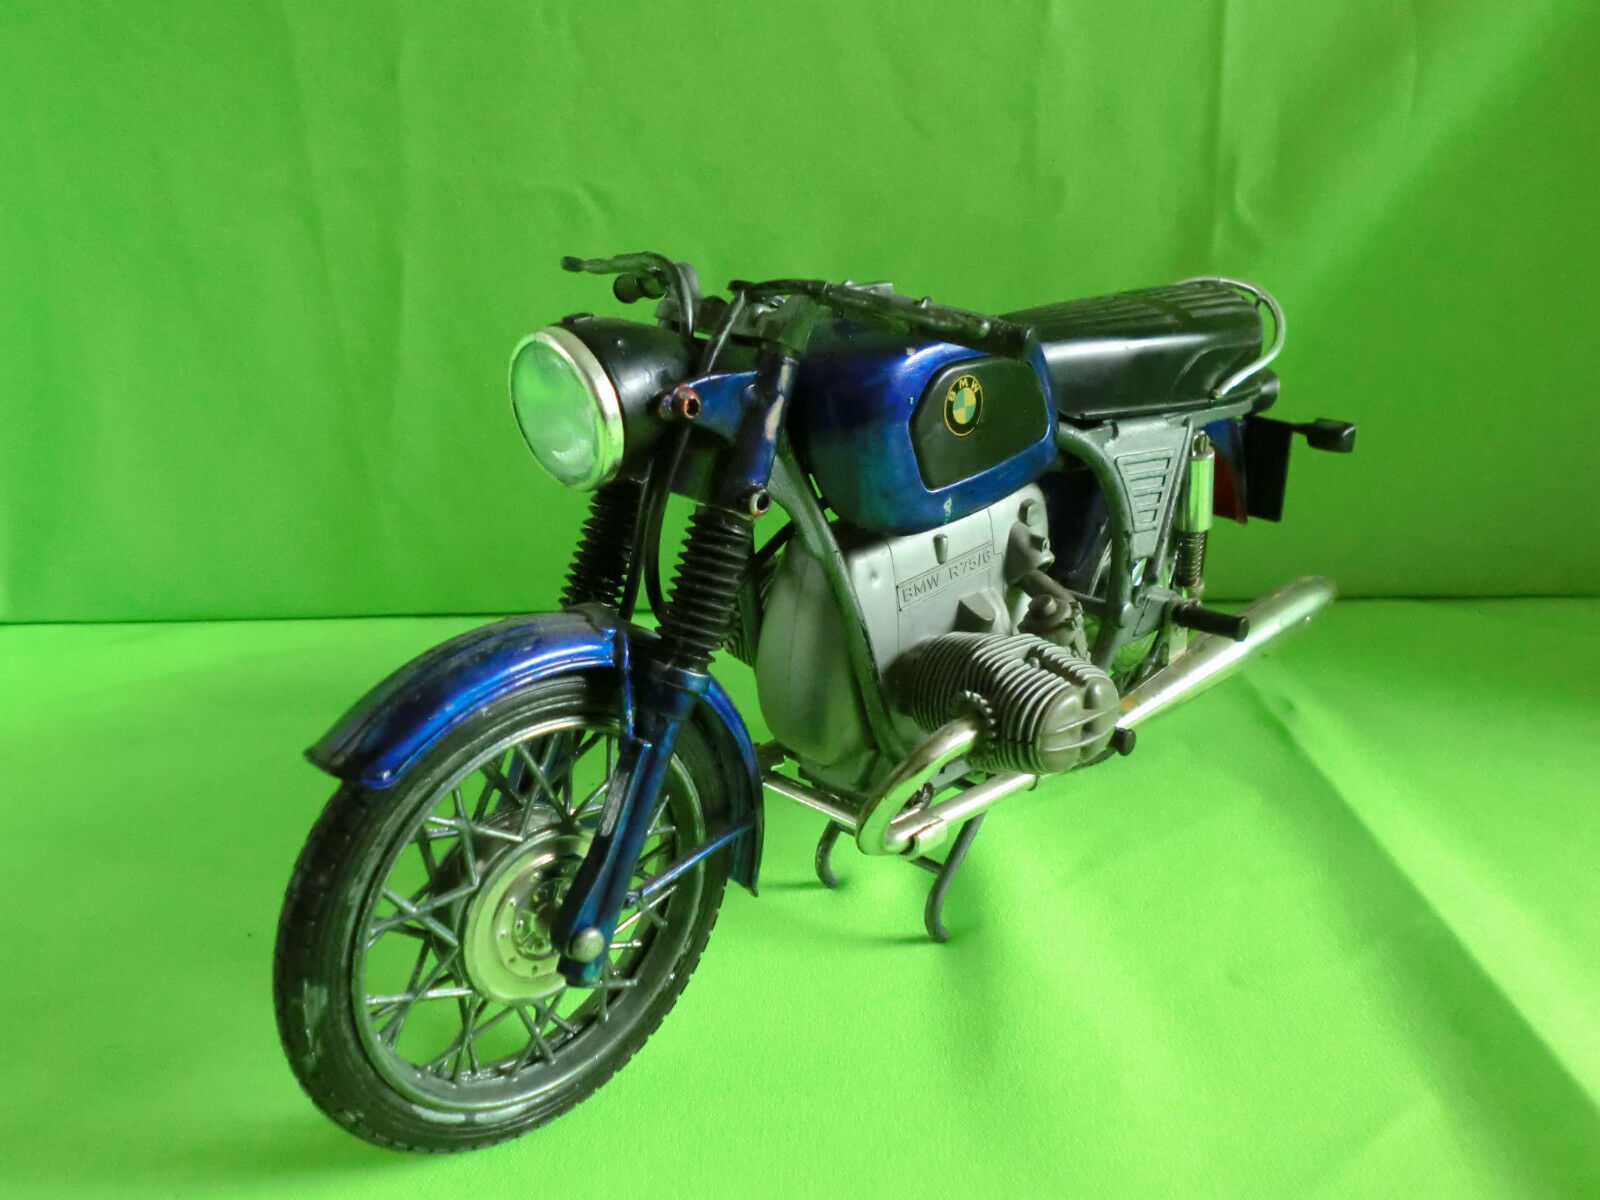 GAMA BMW R75 BIKE - 1 10 -  MADE IN GERMANY - EXTREMELY  SELTEN - GOOD CONDITION